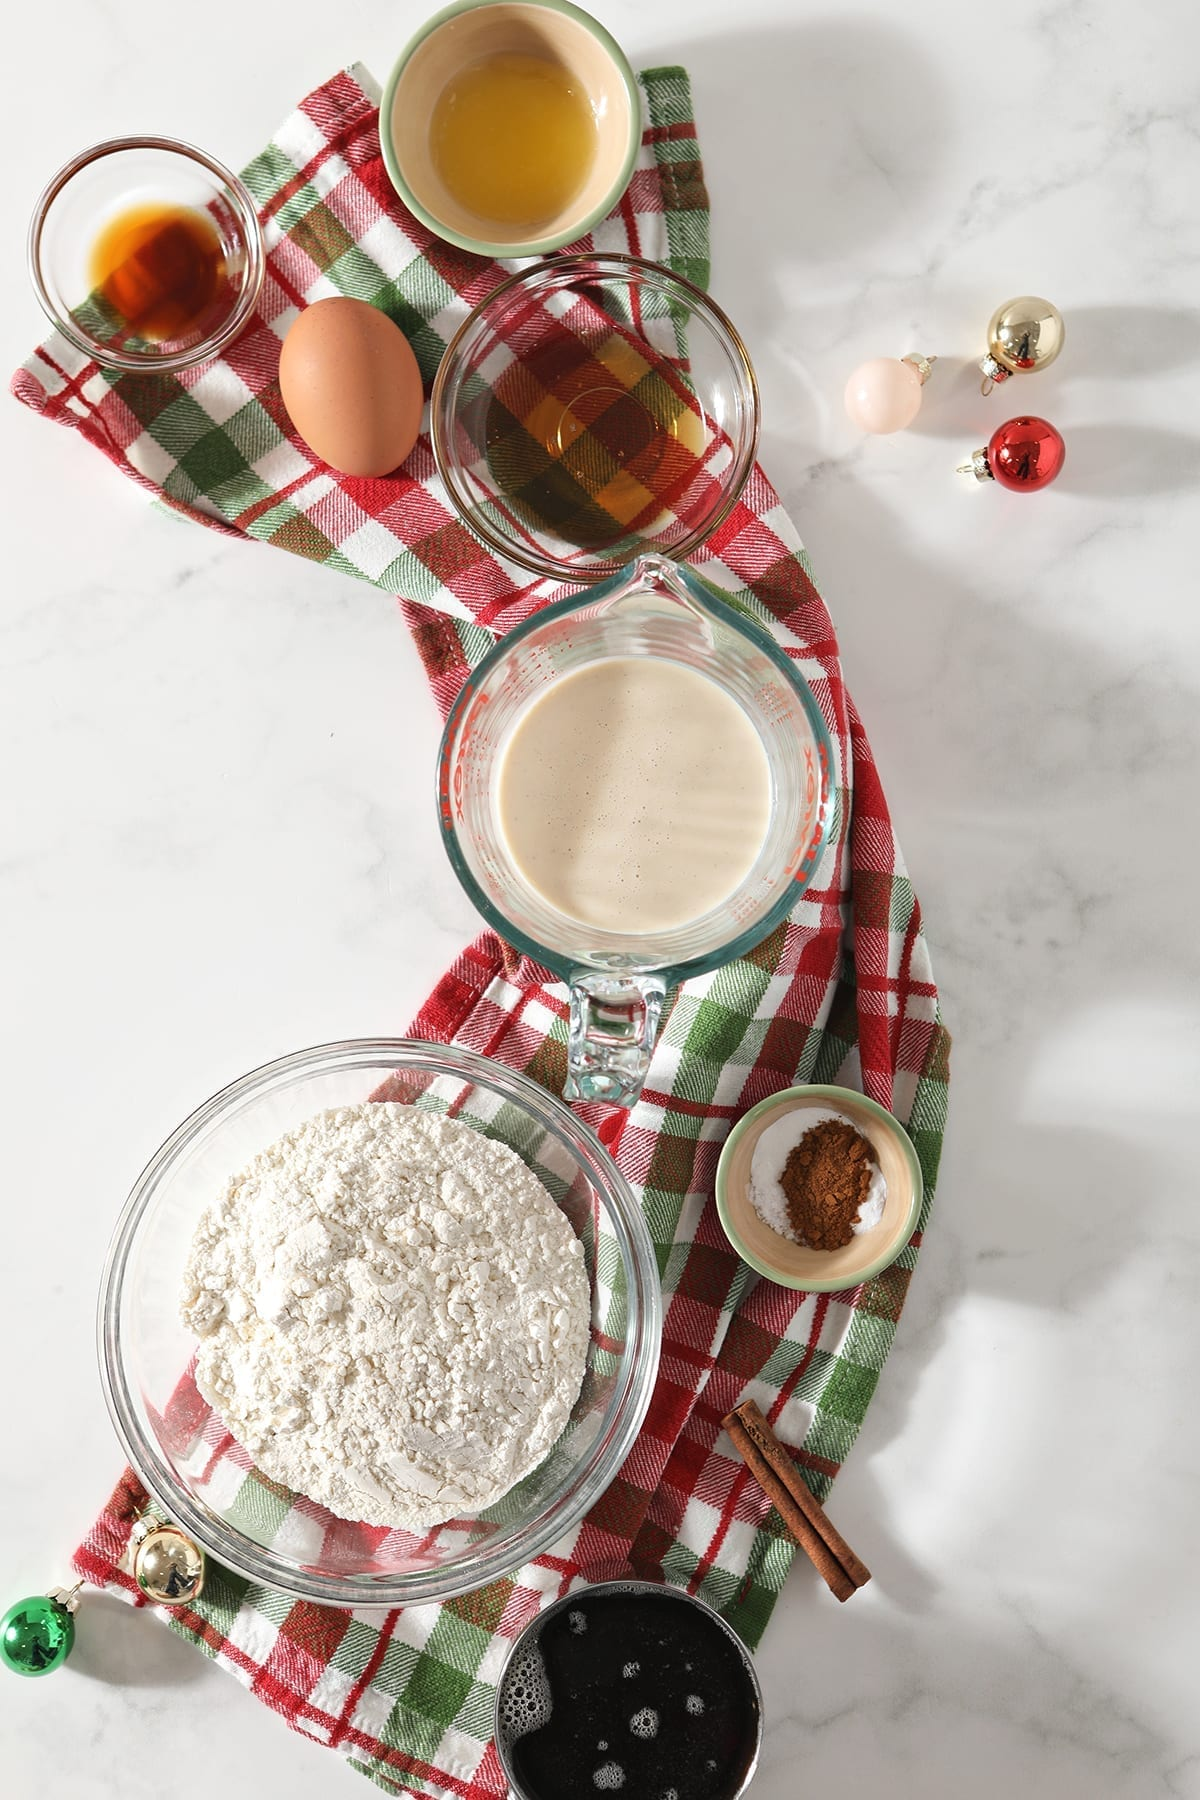 Ingredients for eggnog pancakes and the cinnamon syrup sit on top of a green and red plaid towel on marble next to small shiny ornaments